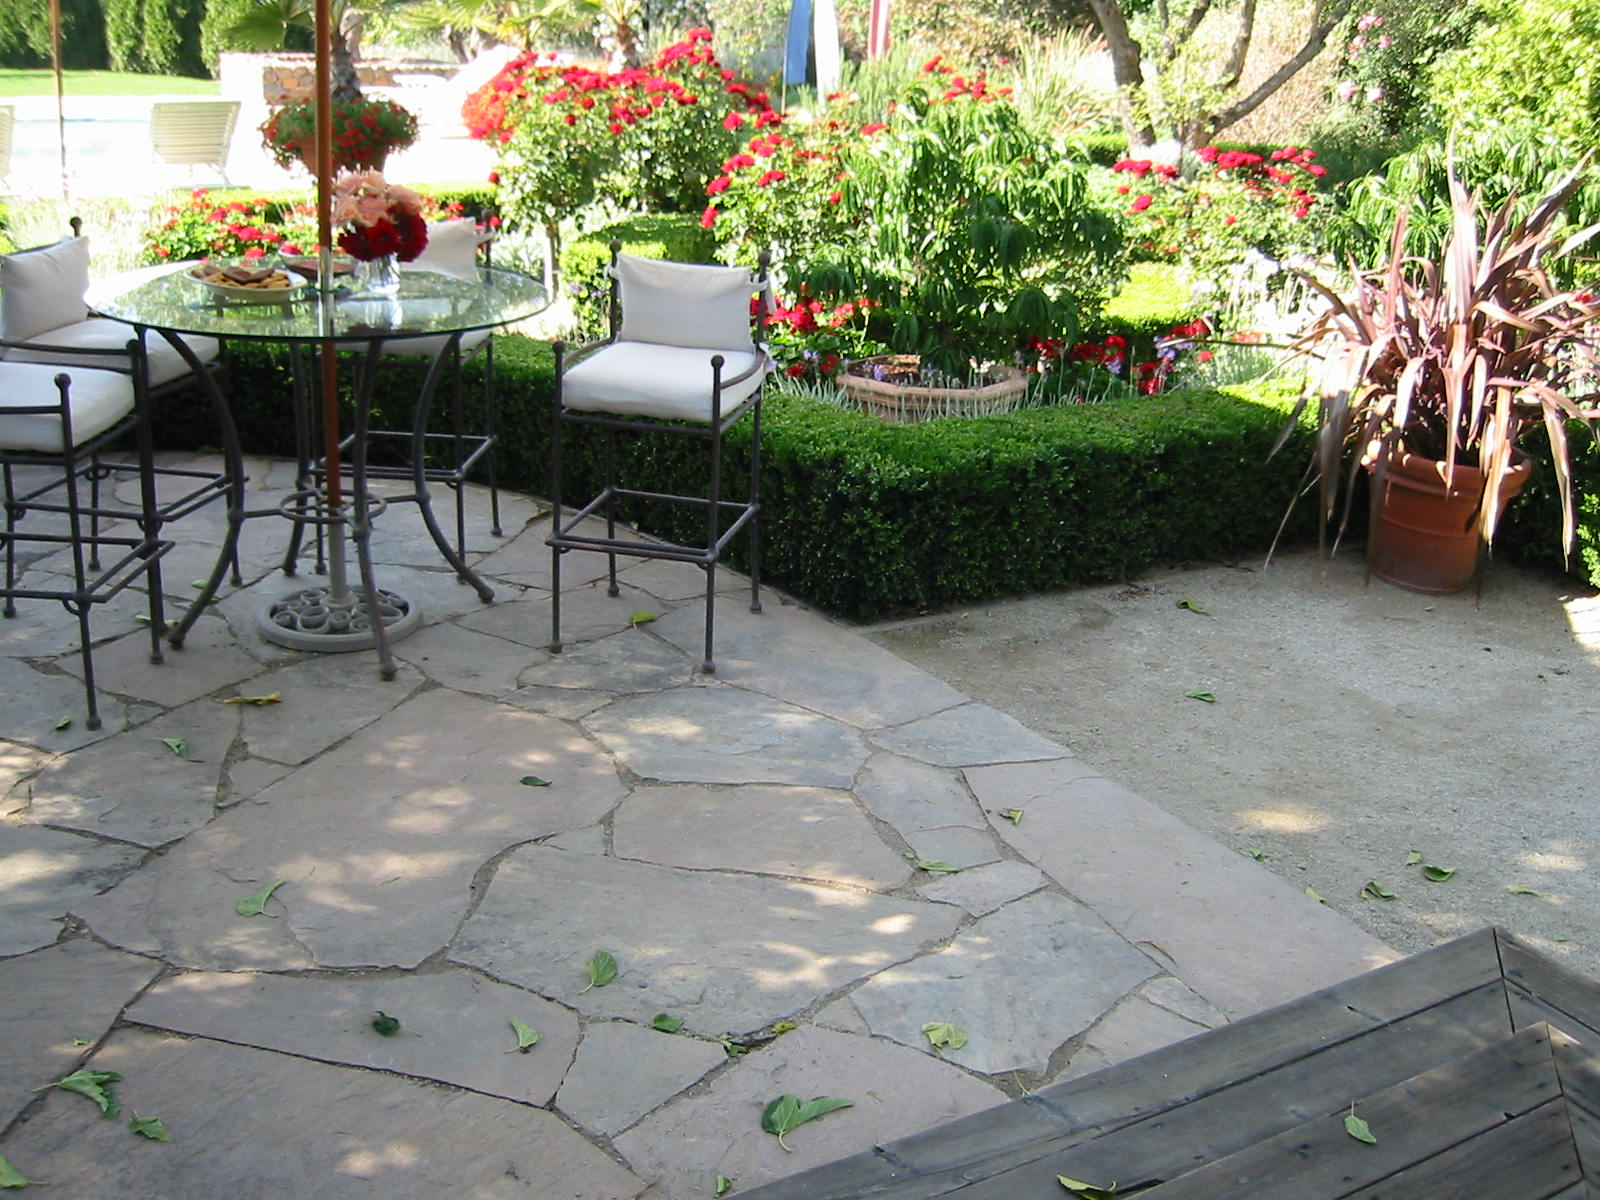 Patios hard and soft the human footprint a proper installation using arizona flagstone with decomposed granite in between you will rarely see solutioingenieria Images